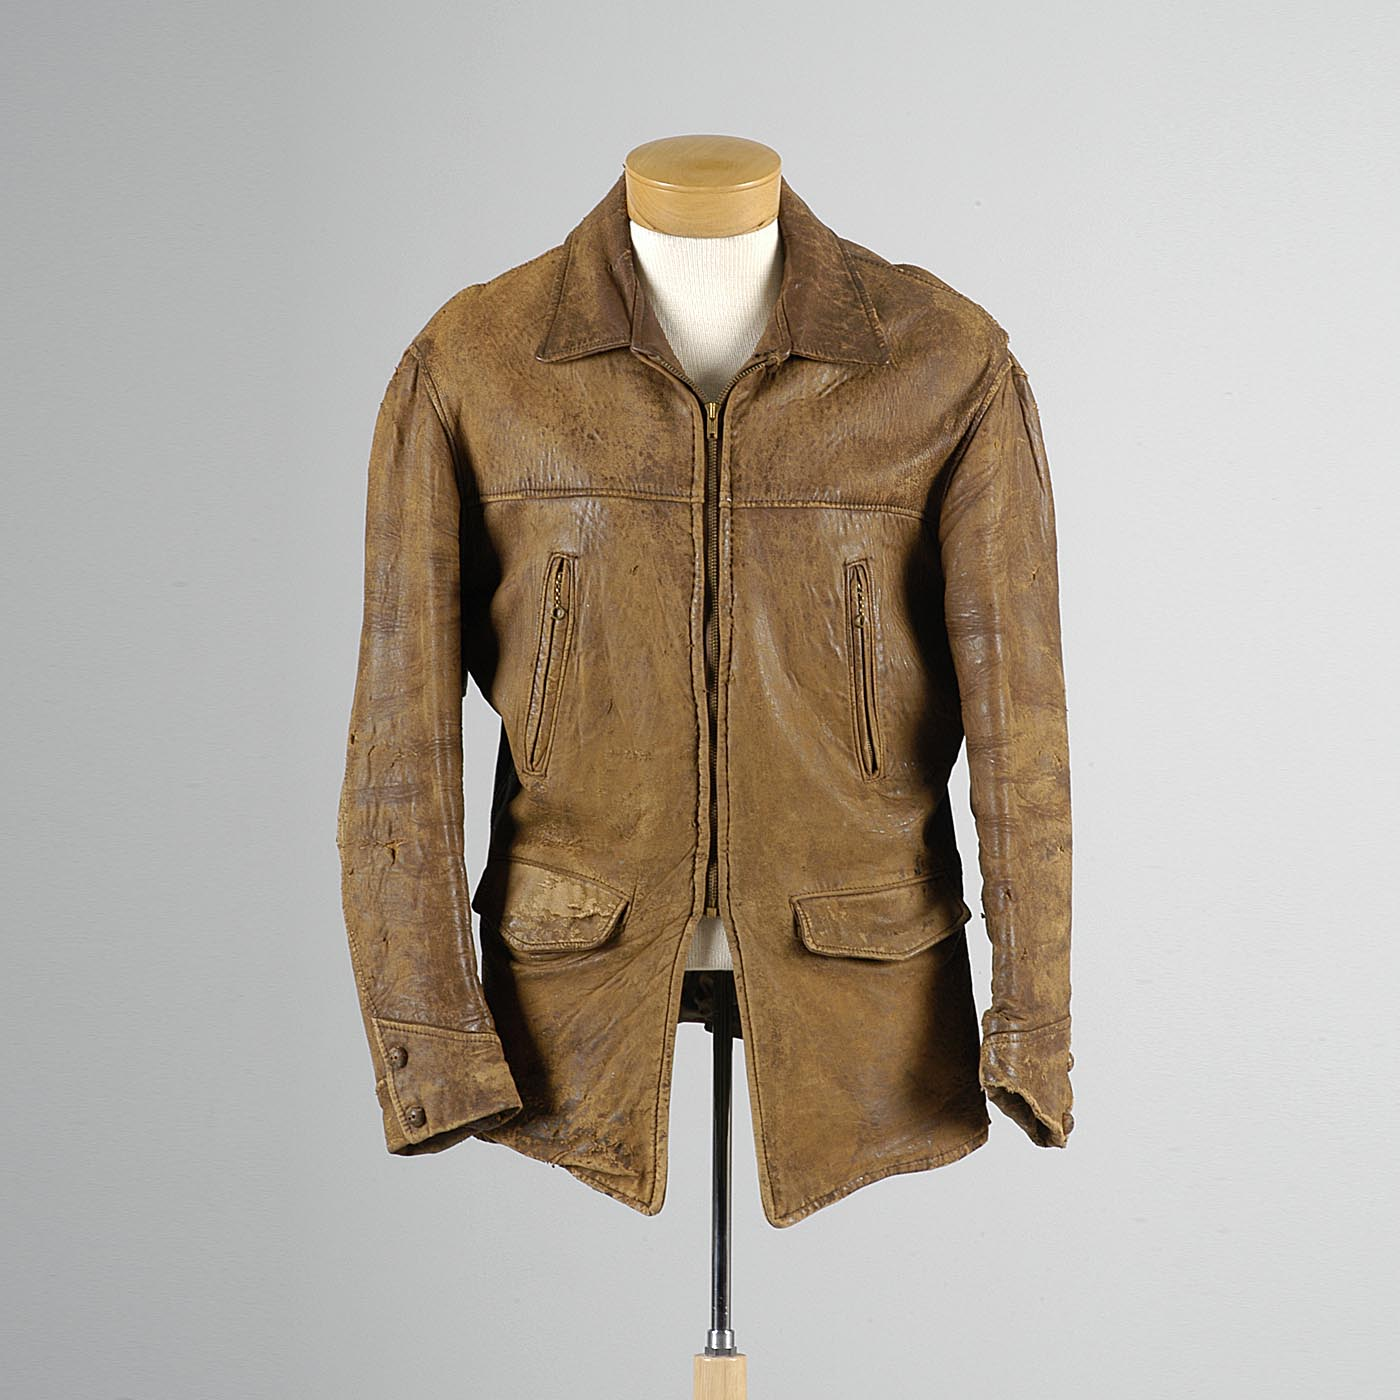 1940s Men's Kit Karson Indian Scout Leather Motorcycle Jacket